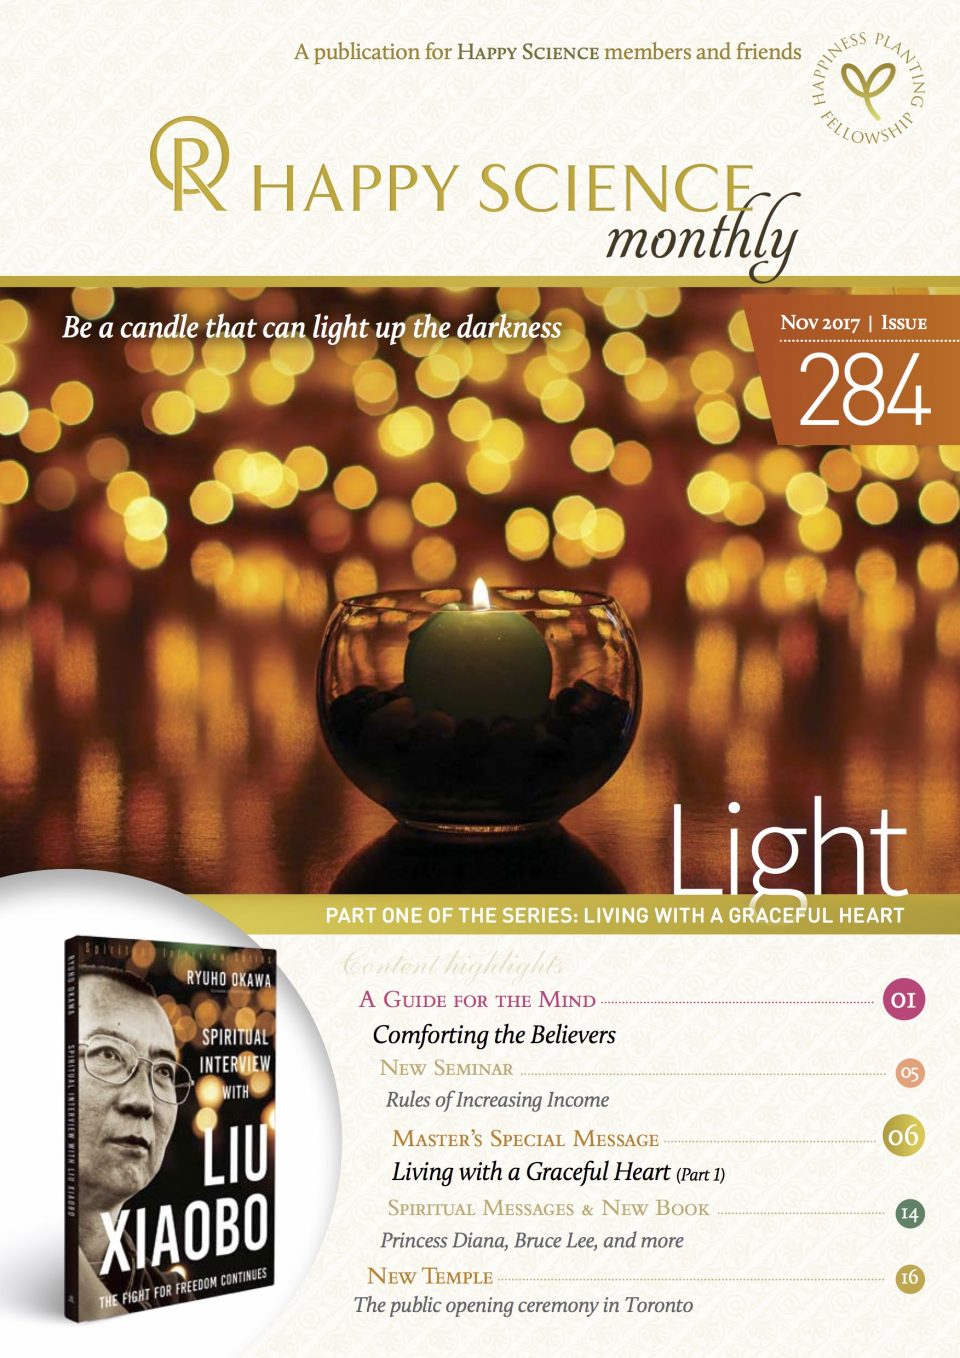 HAPPY SCIENCE Monthly 284 is released!